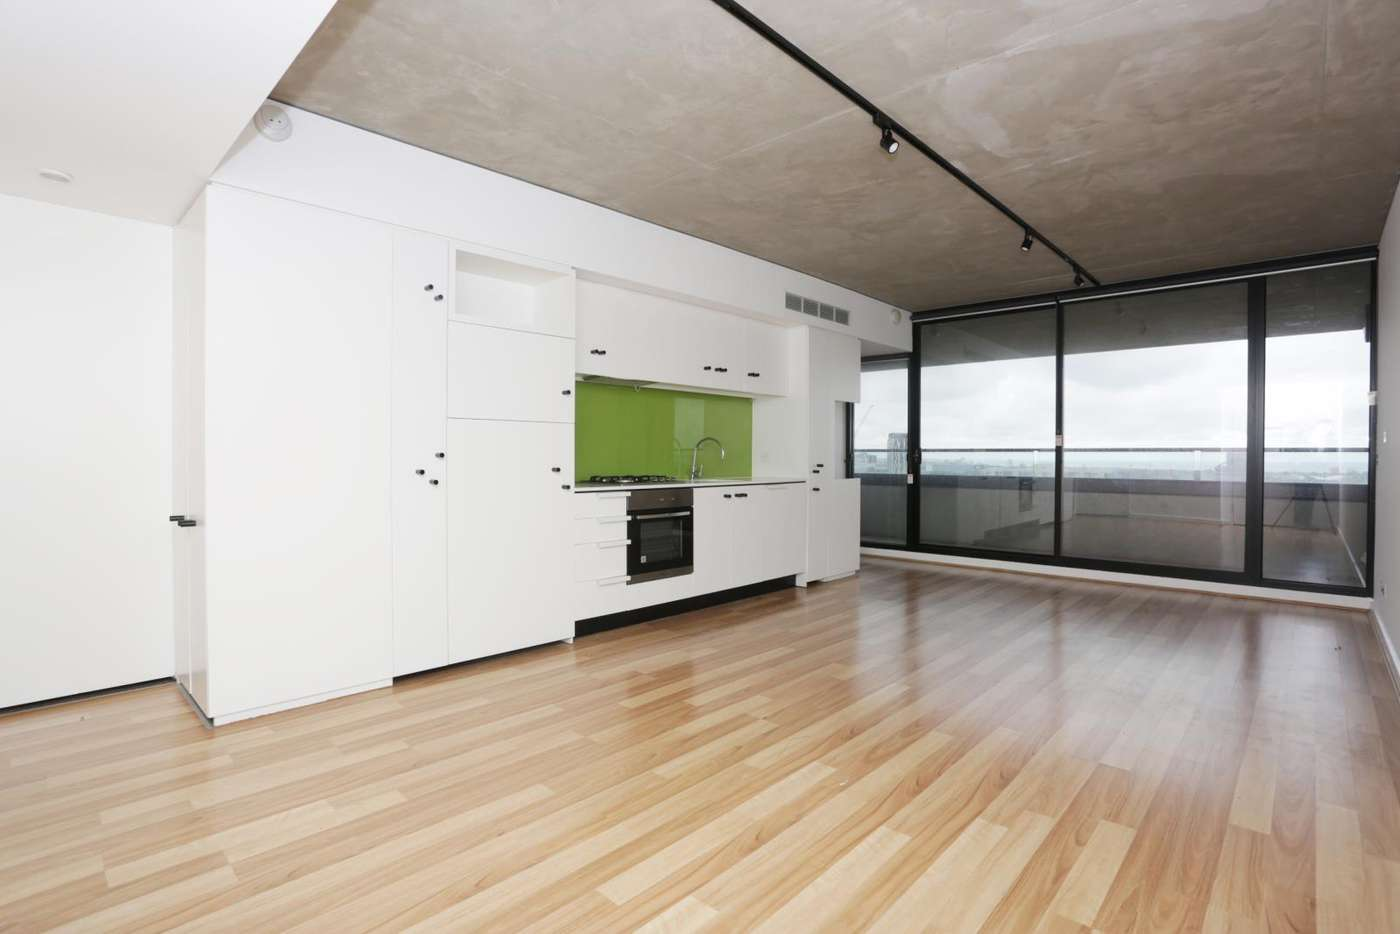 Main view of Homely apartment listing, 1904/152 Sturt Street, Southbank VIC 3006